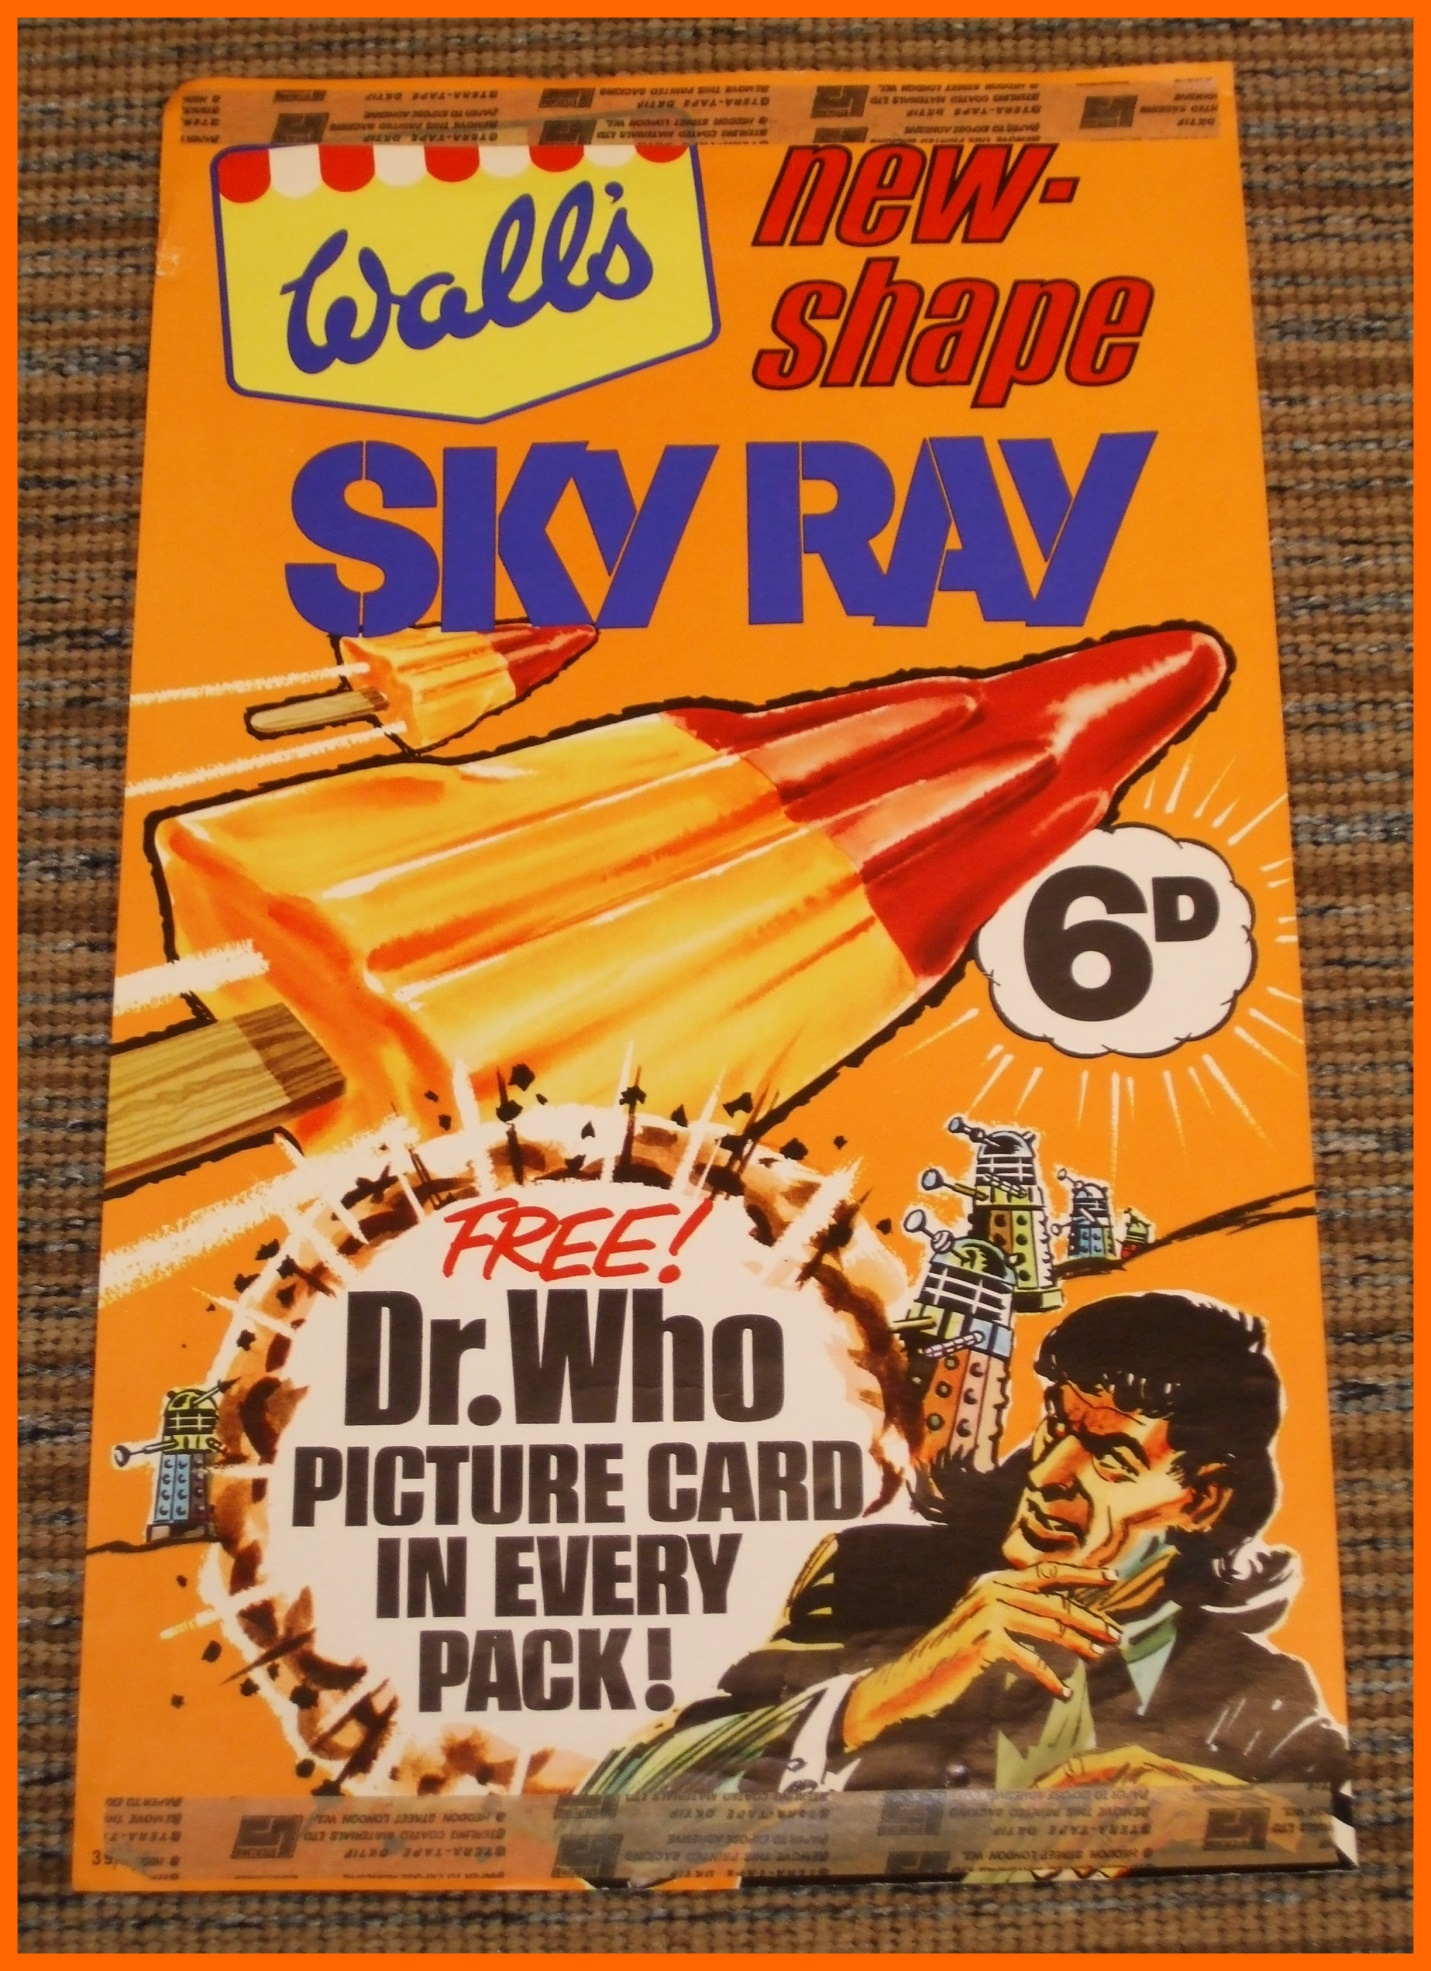 WANTED - Shop window display card for the Wall's Sky Ray Dr. Who promotion (image courtesy of Richard Bignell)